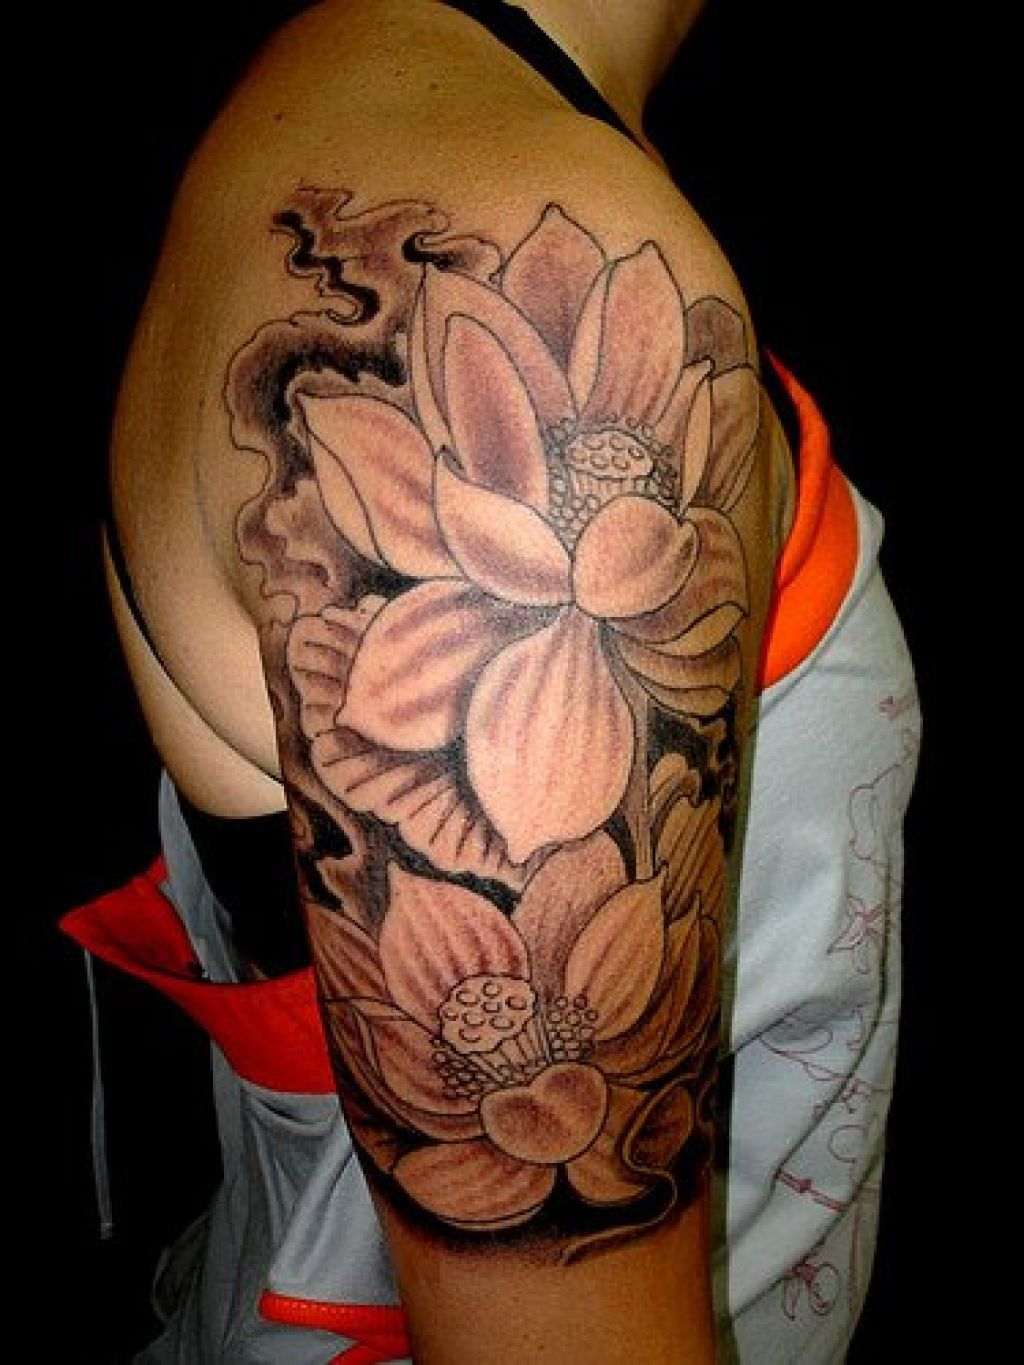 Photo Realistic Flower Tattoos Google Search: Lotus Flower Tattoo On Shoulder - Google Search